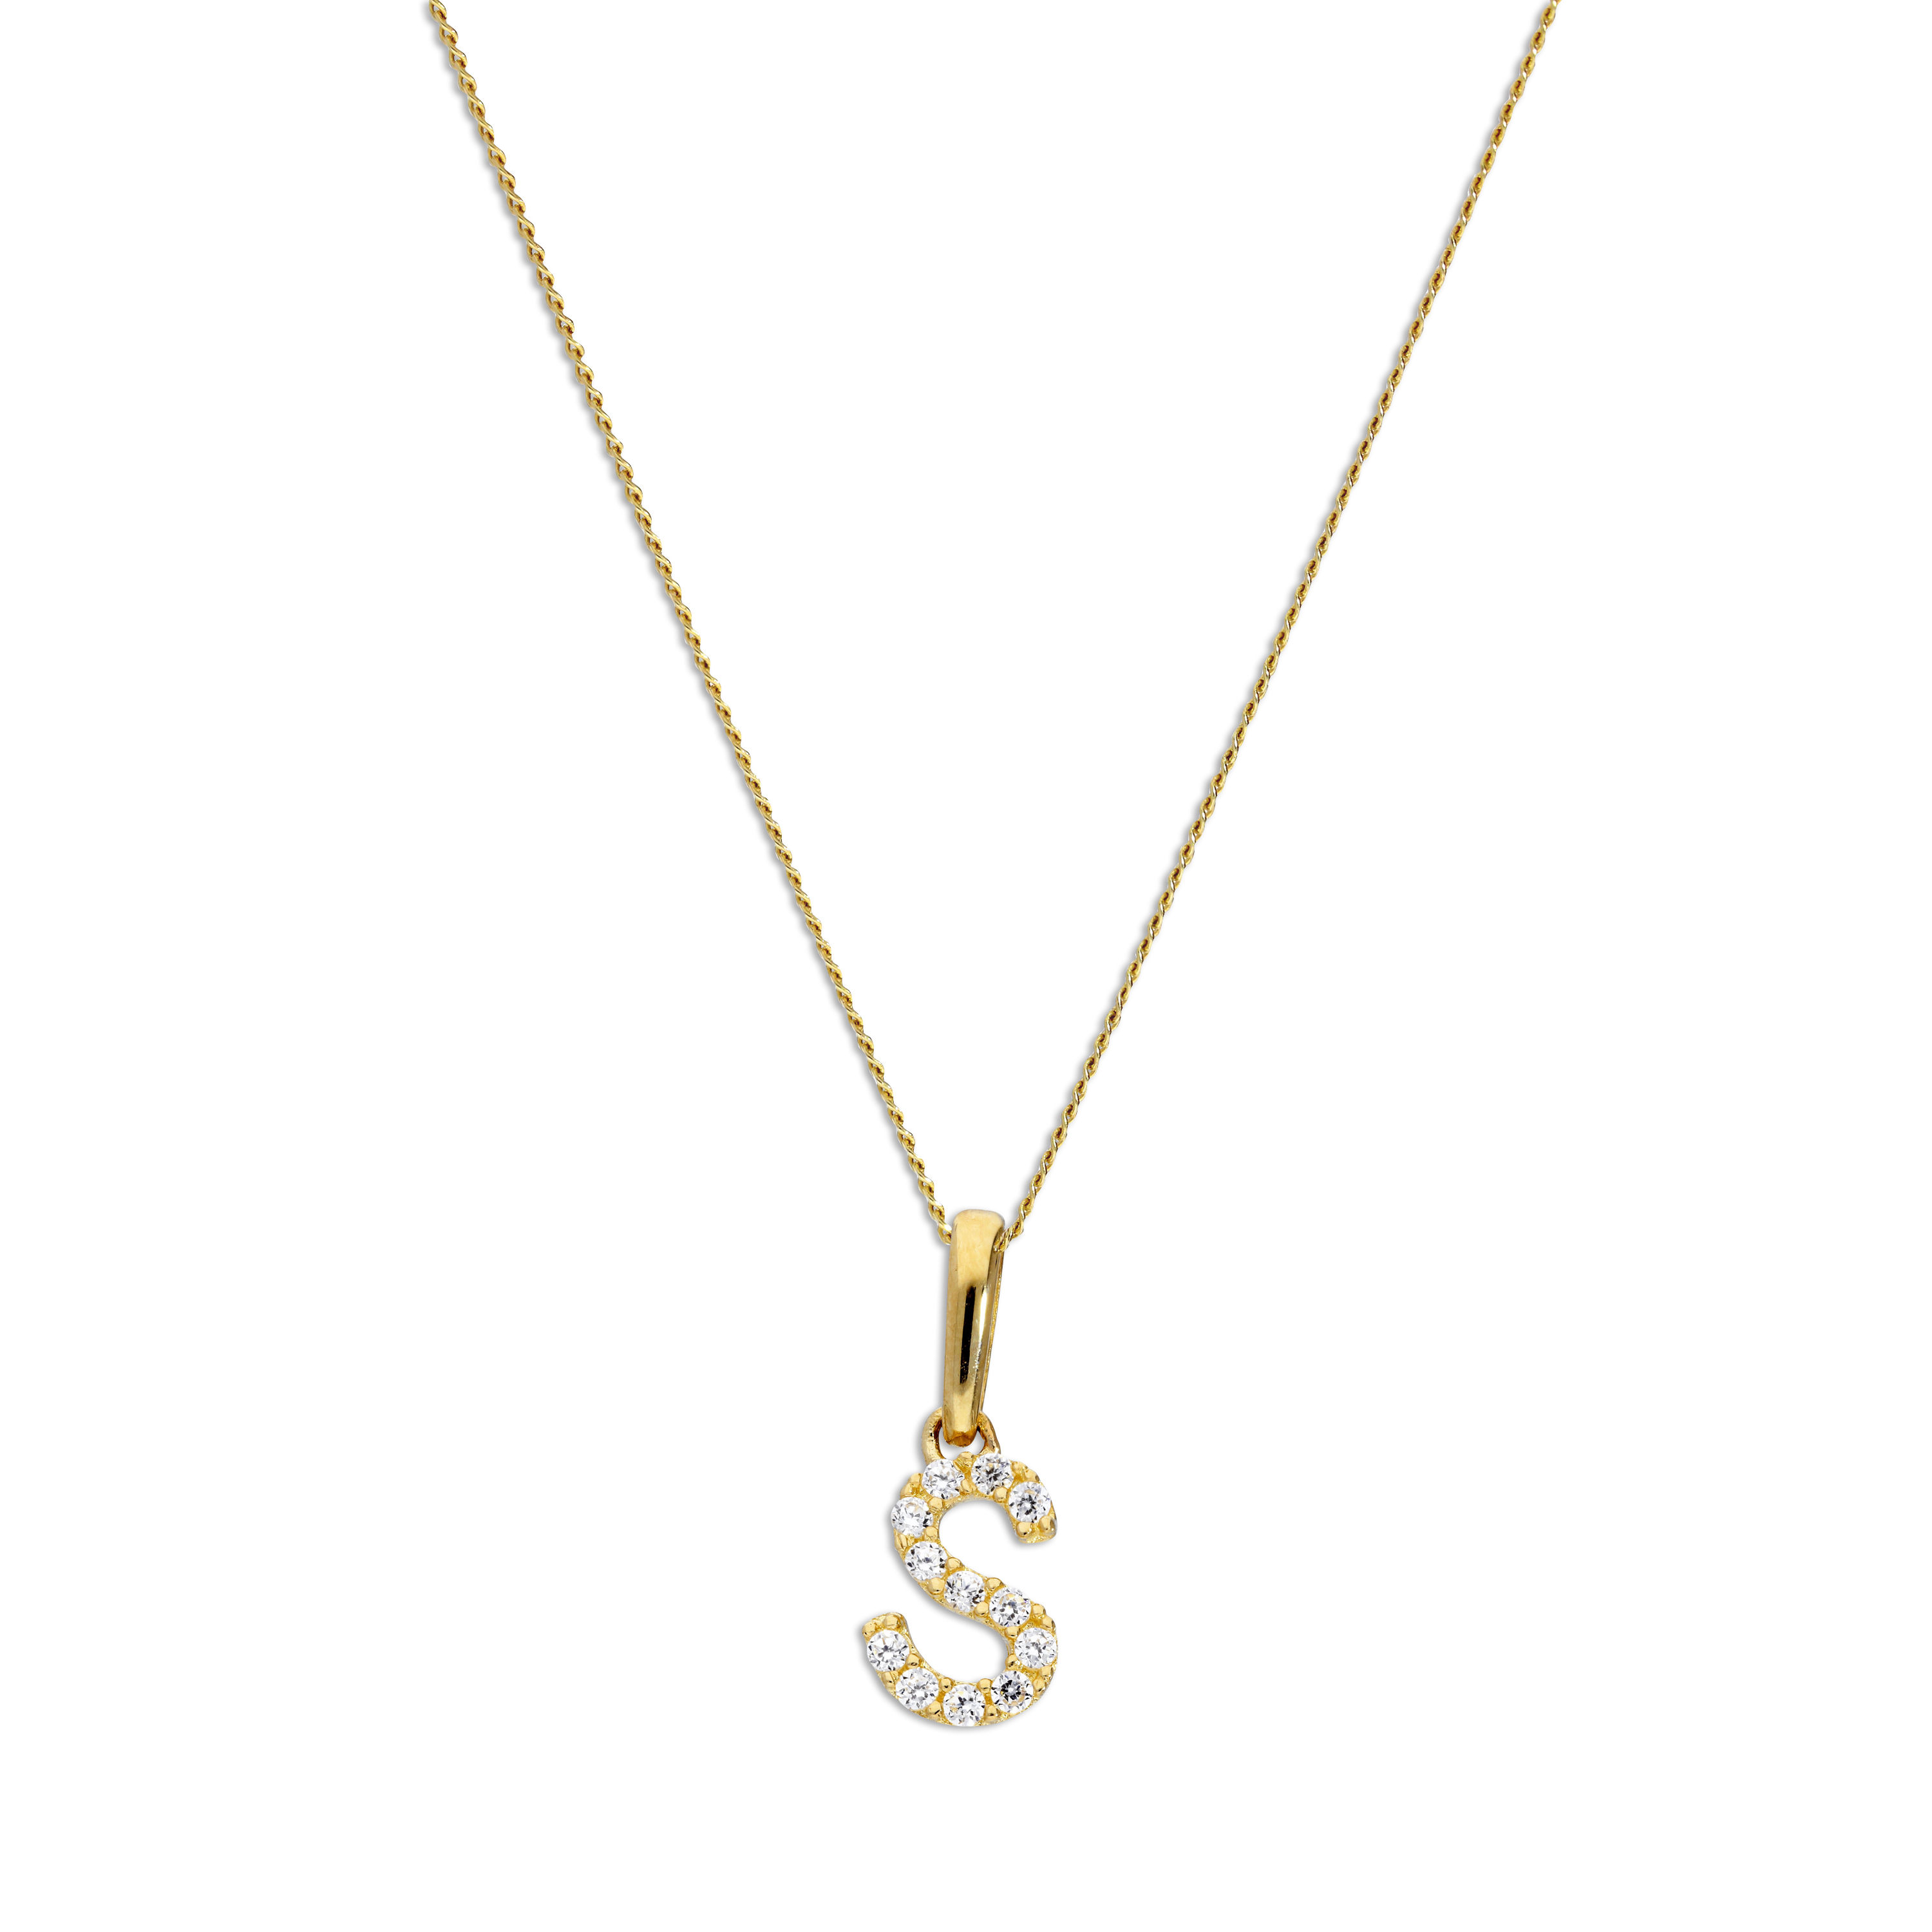 An image of 9ct Gold Clear CZ Crystal Script Alphabet Letter S Necklace 20 Inches Chain